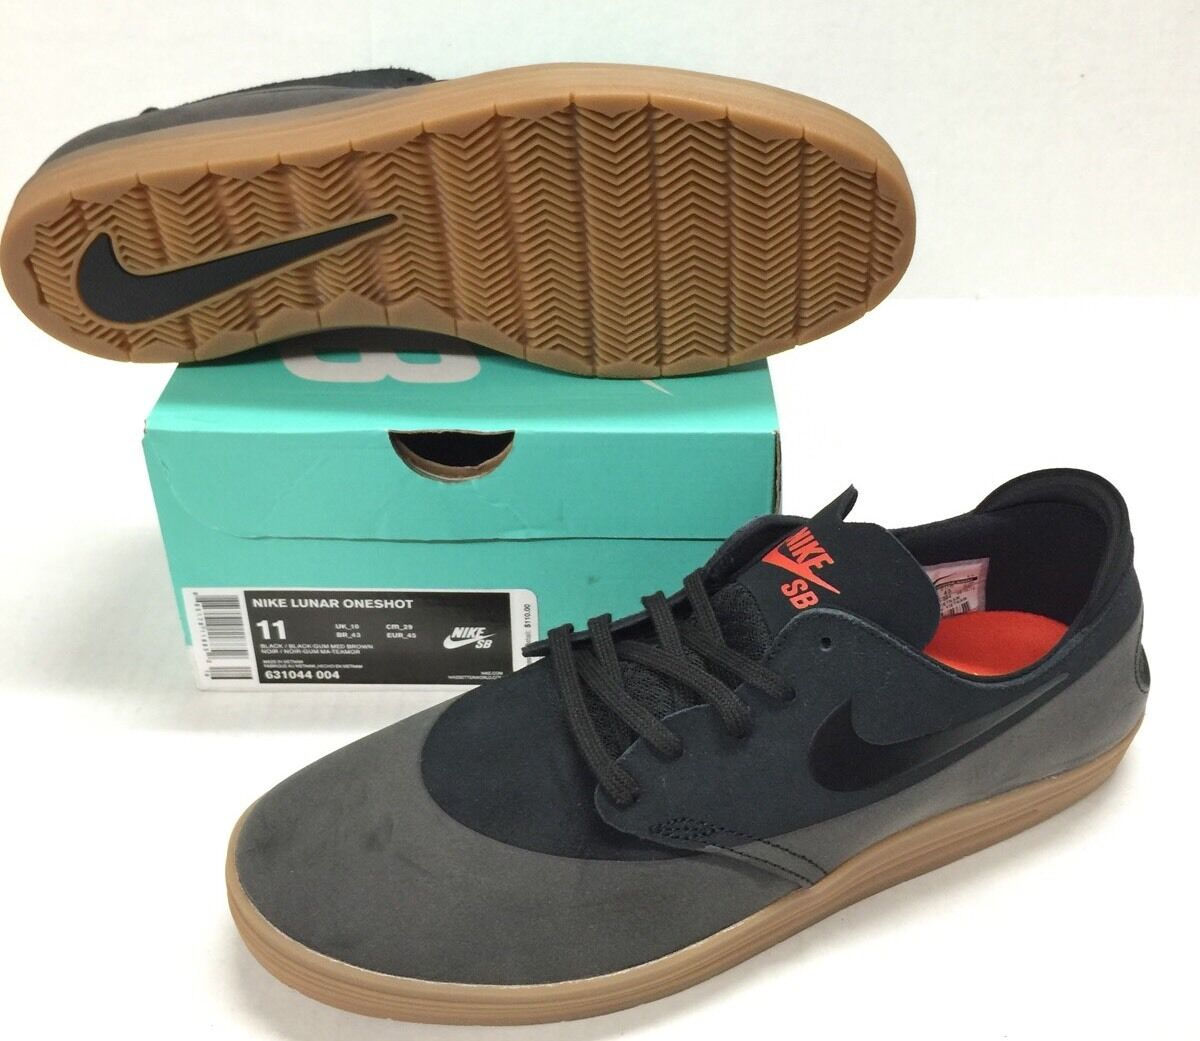 NIKE SB LUNAR ONESHOT BLACK / BLACK - GUM MED BROWN *NEW* The latest discount shoes for men and women